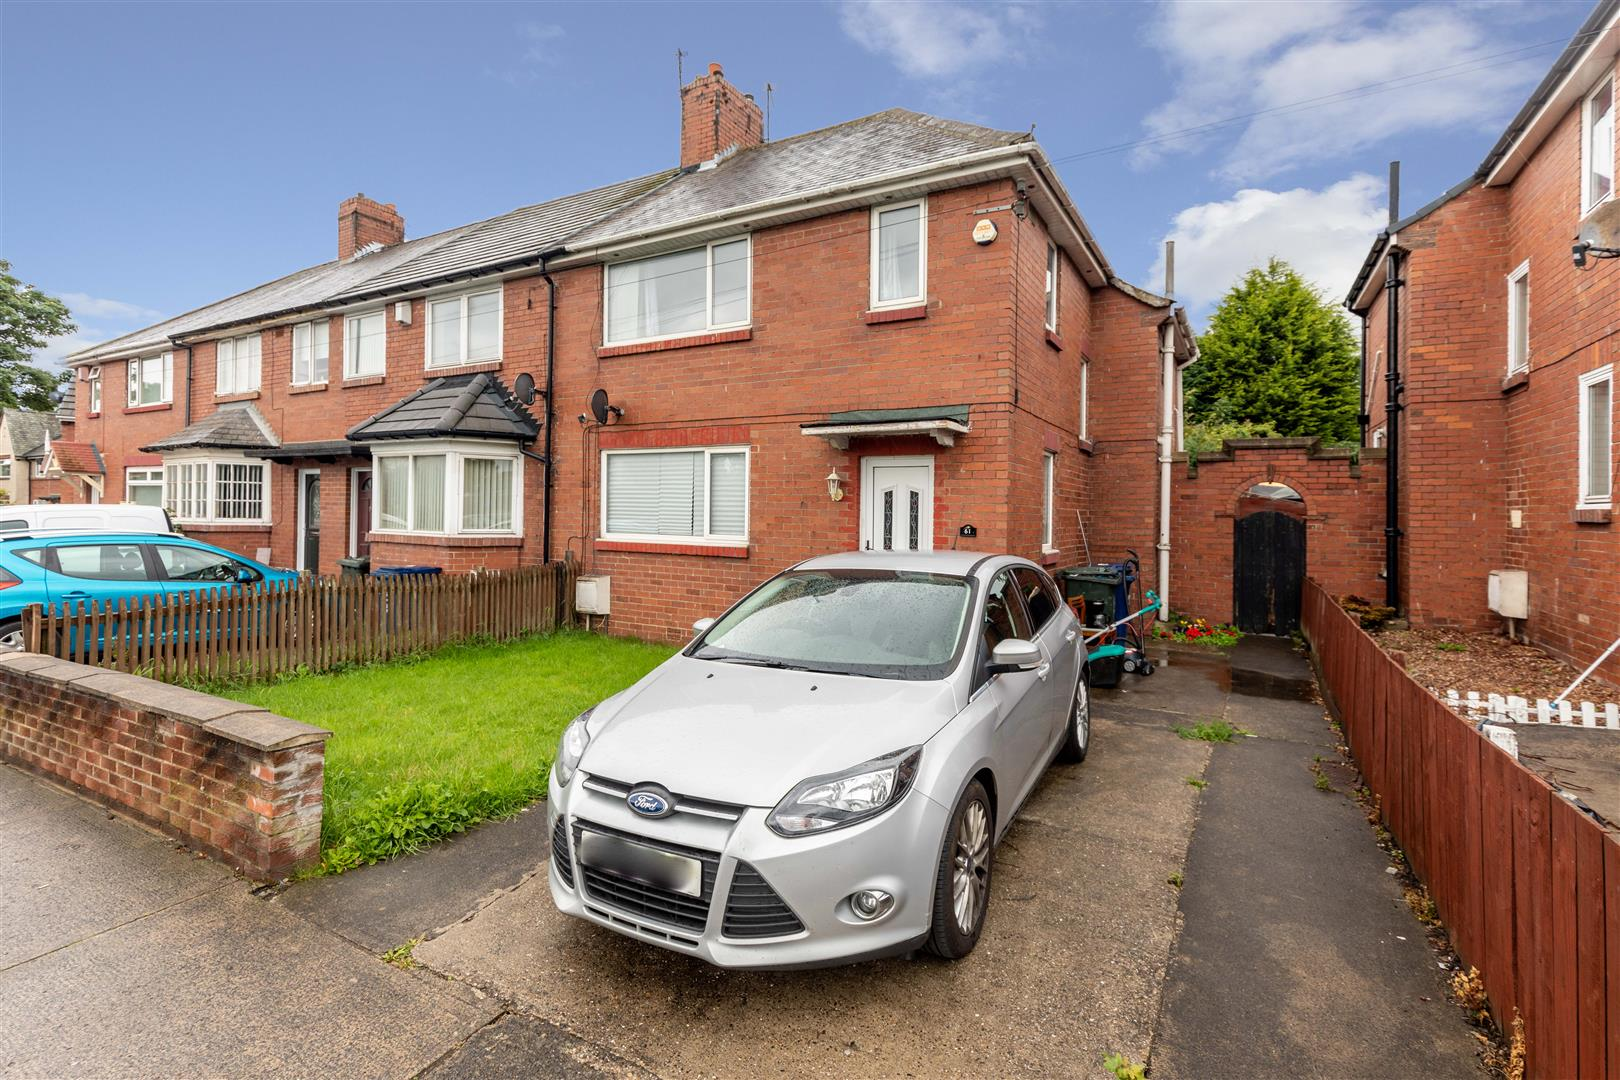 3 bed semi-detached house for sale in Benton Road, High Heaton - Property Image 1